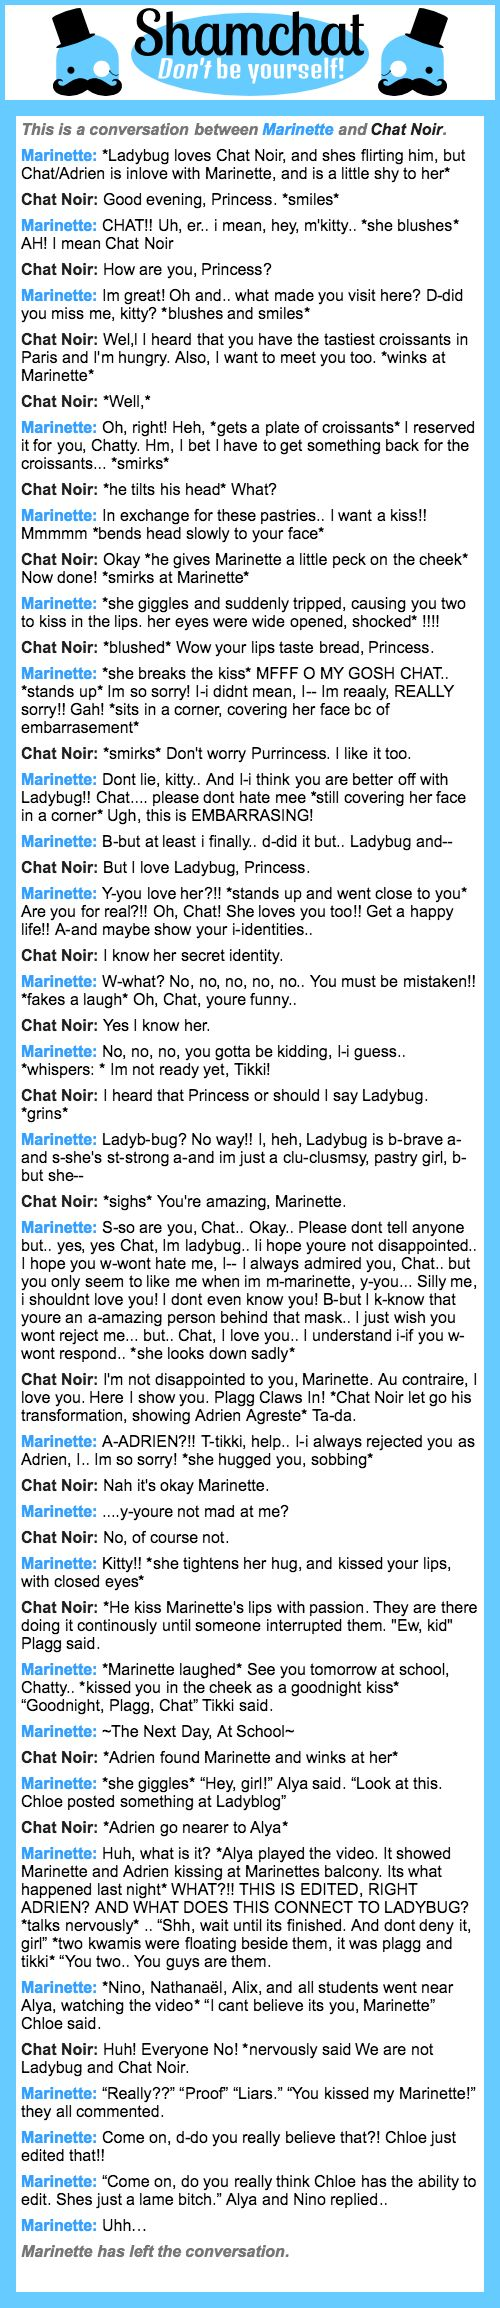 A conversation between Chat Noir and Marinette